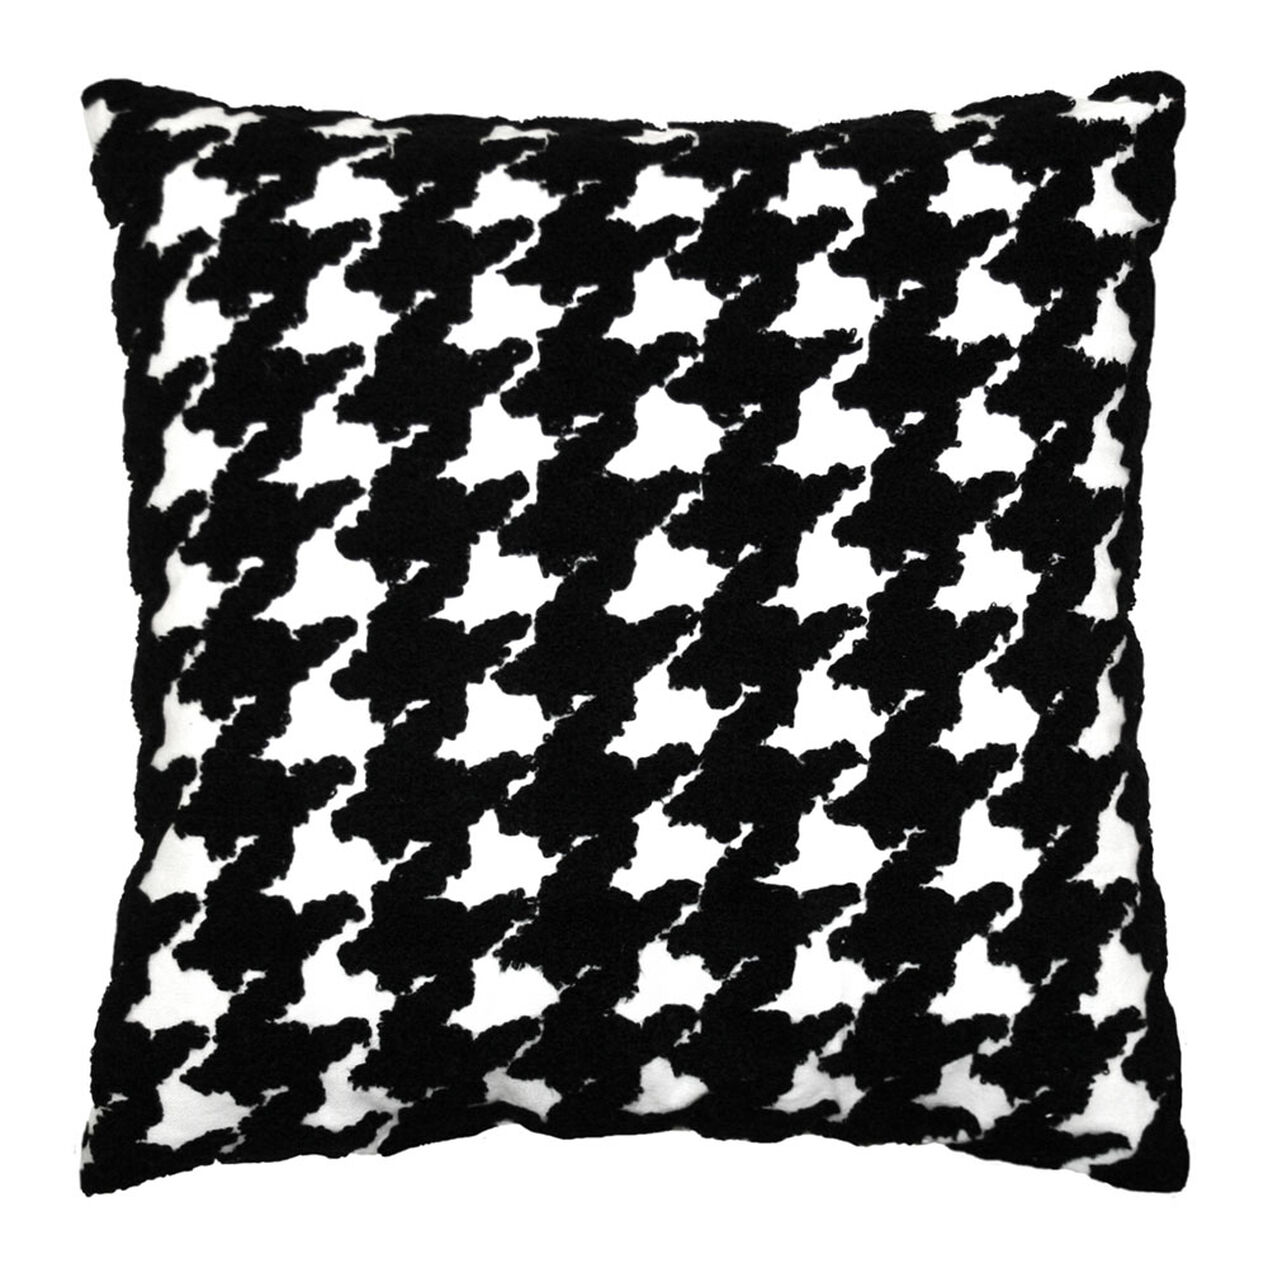 Houndstooth Pillow Black White 18 In